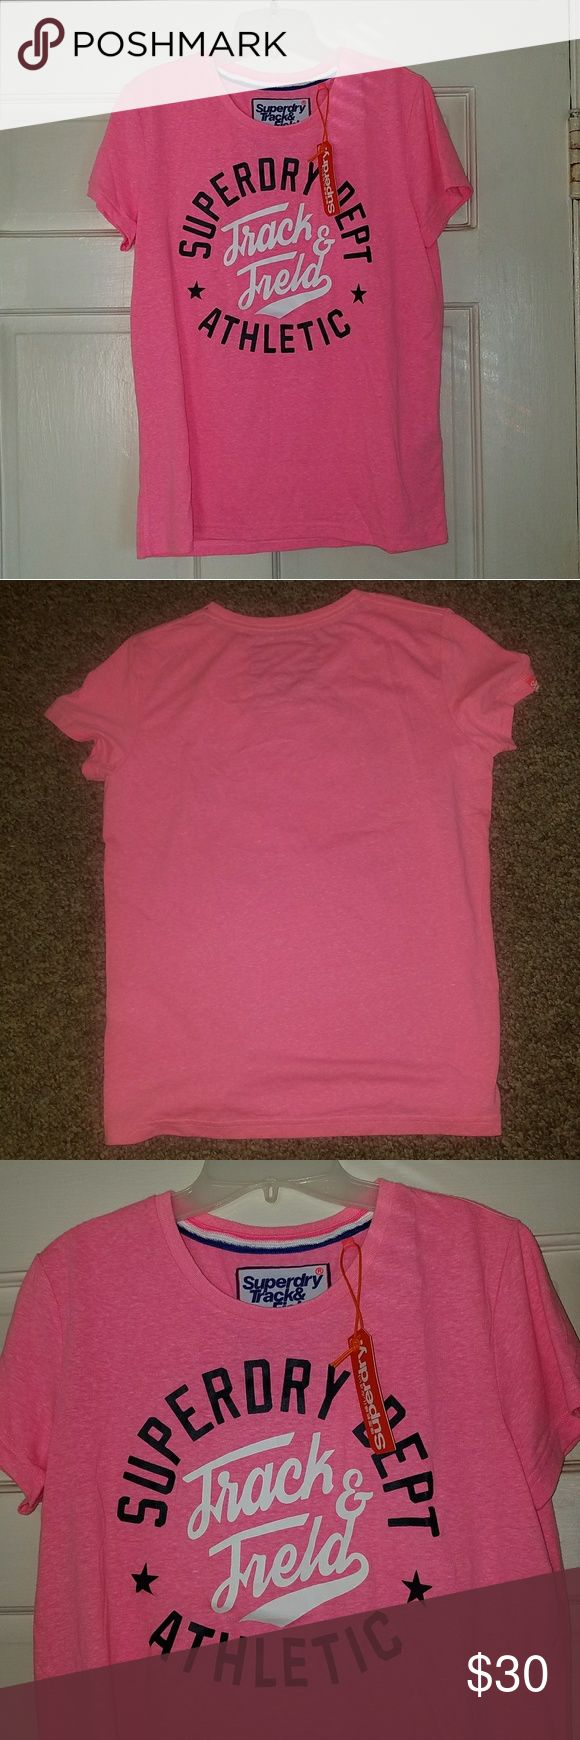 NWT - Pink Superdry Women's Athletic Tee sz. S Brand new with tags! Pink Superdry 'Pink Sorbet' women's atheltice tee. Size small. 100% Authentic. Superdry Tops Tees - Short Sleeve